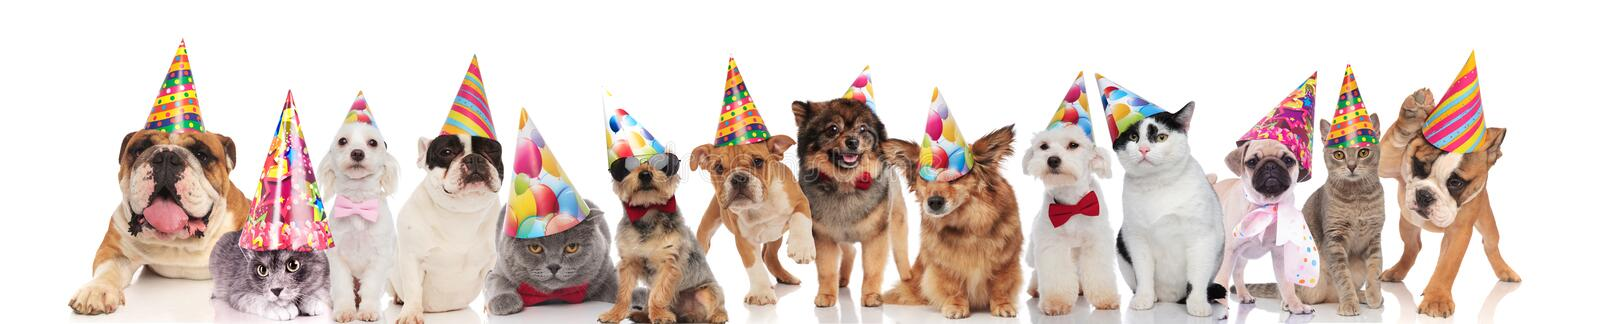 Happy cats and dogs with colorful caps on white background. Happy cats and dogs with colorful birthday caps standing, sitting and lying on white background stock photo